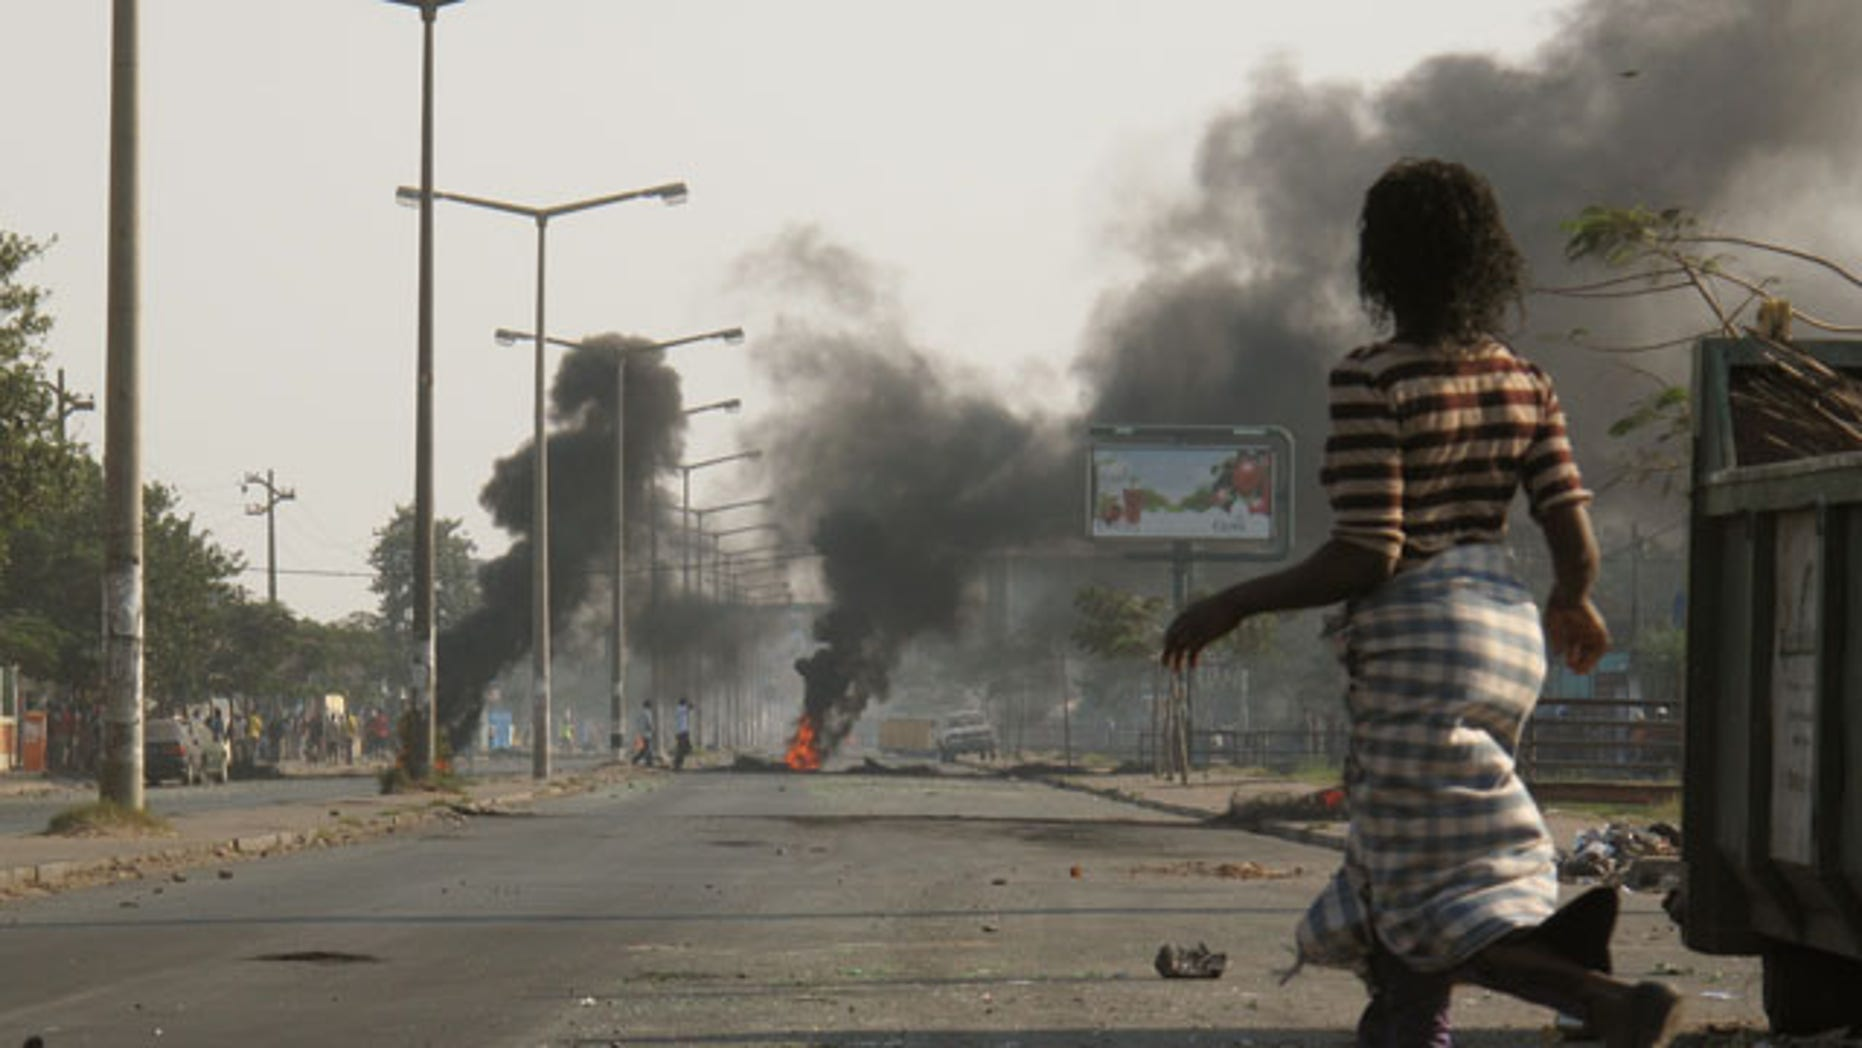 September 2: A woman passes nearby burning tires in a street in Maputo, Mozambique. (AP)